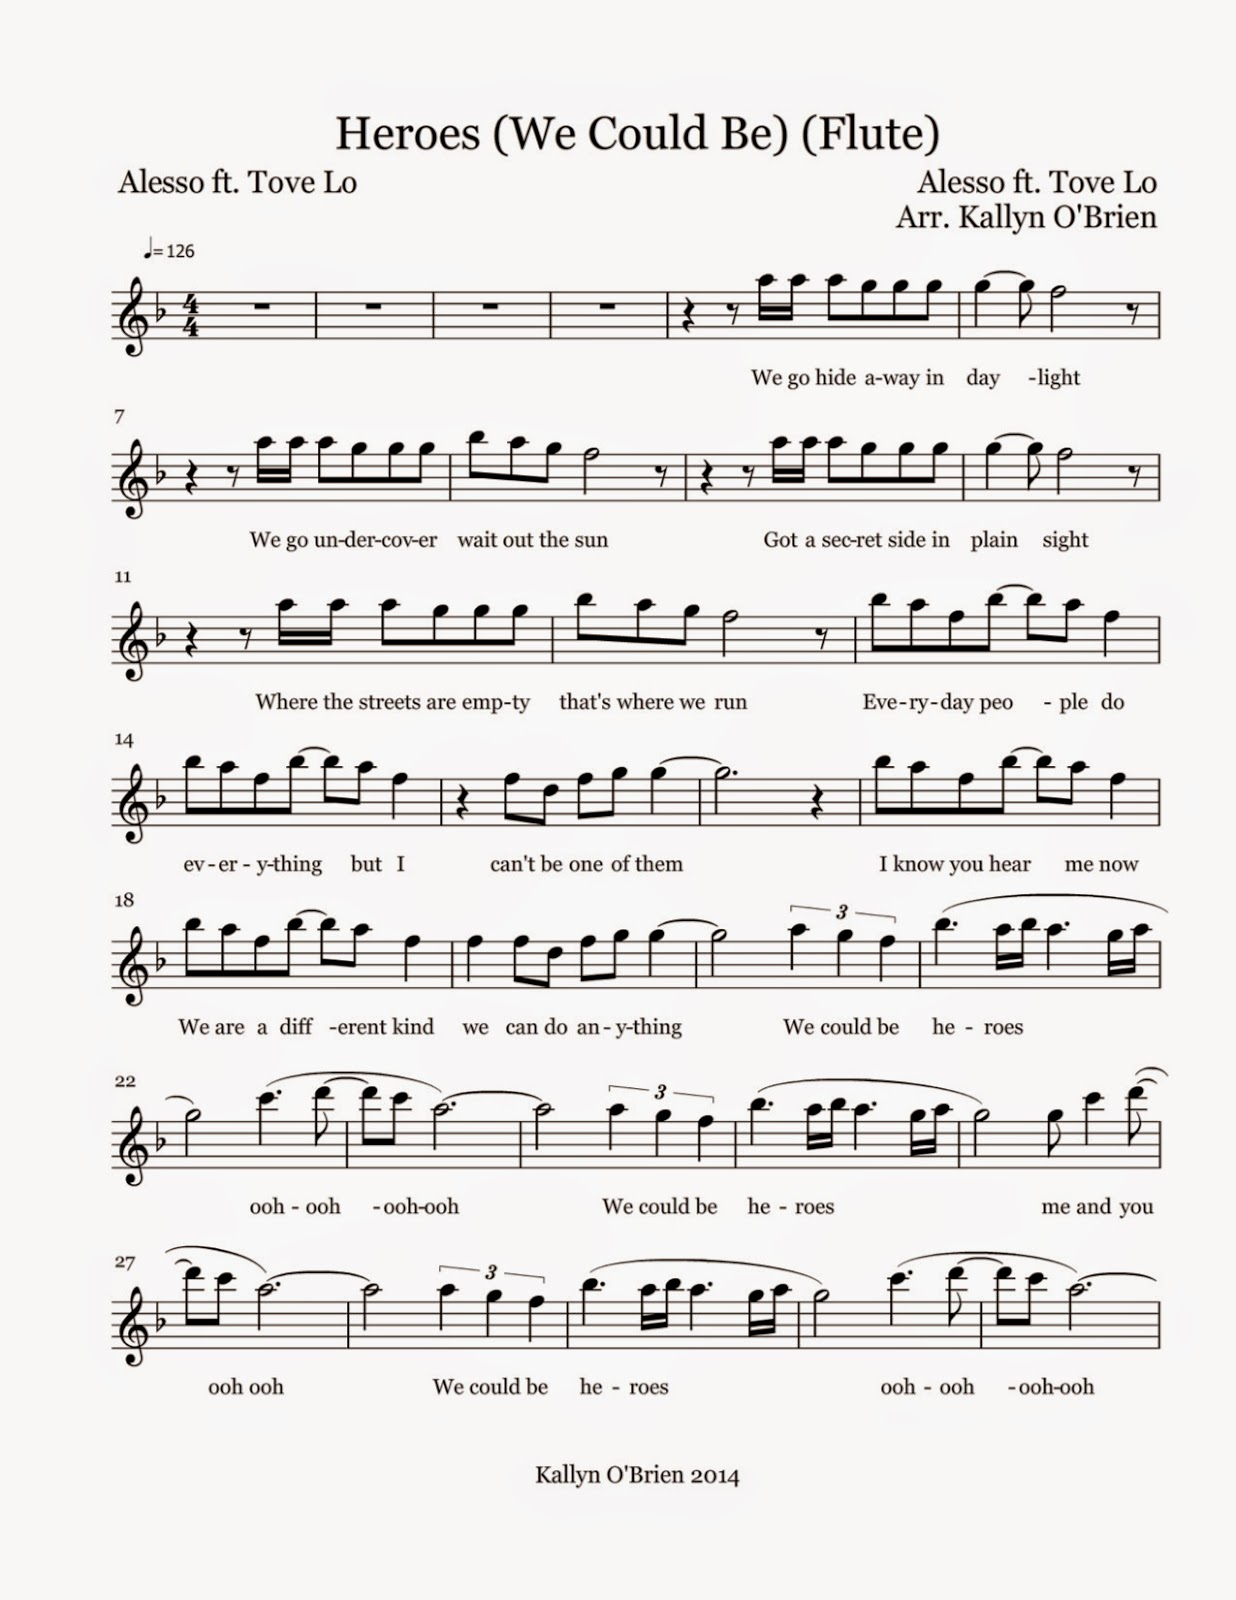 Flute Sheet Music: Heroes (We Could Be) - Sheet Music